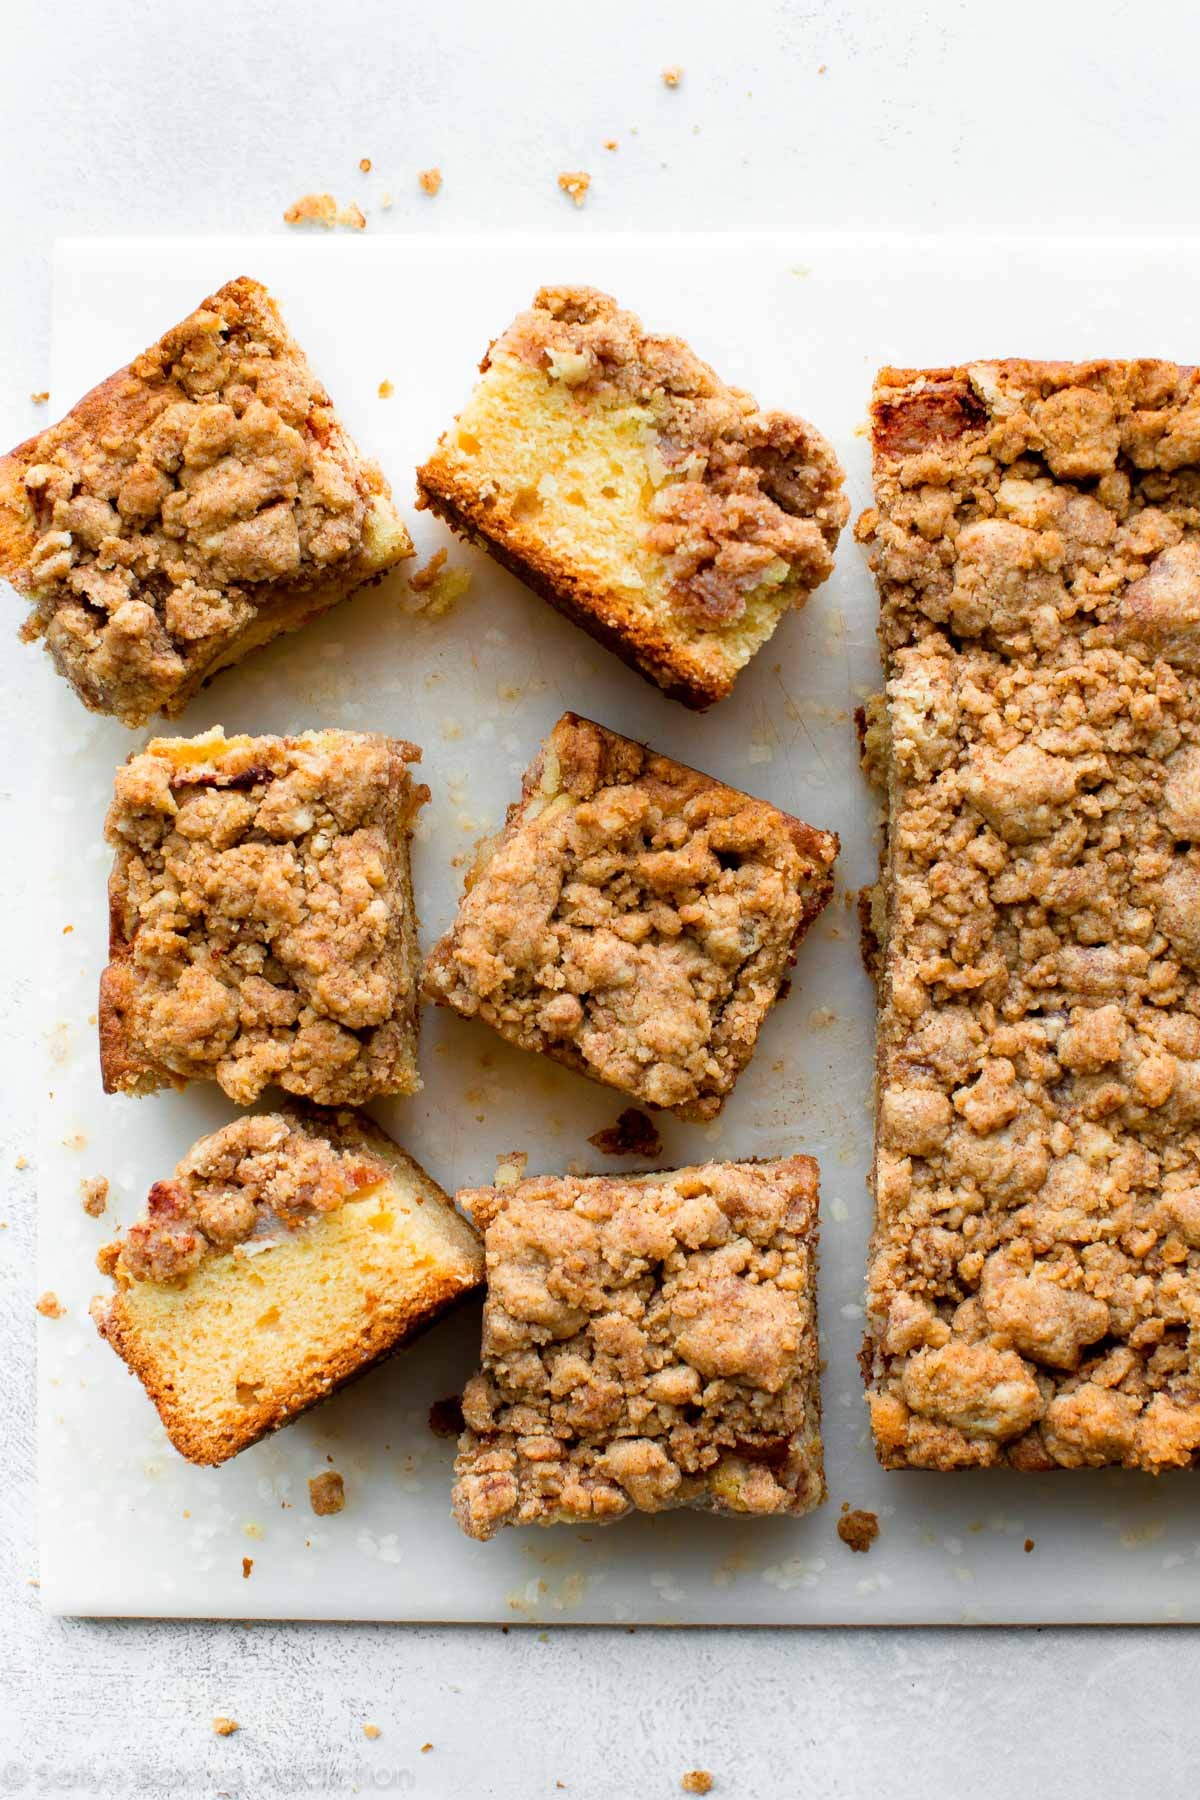 Delicious New York style crumb cake with warm cinnamon apples and DOUBLE the buttery crumb topping! Recipe on sallysbakingaddiction.com